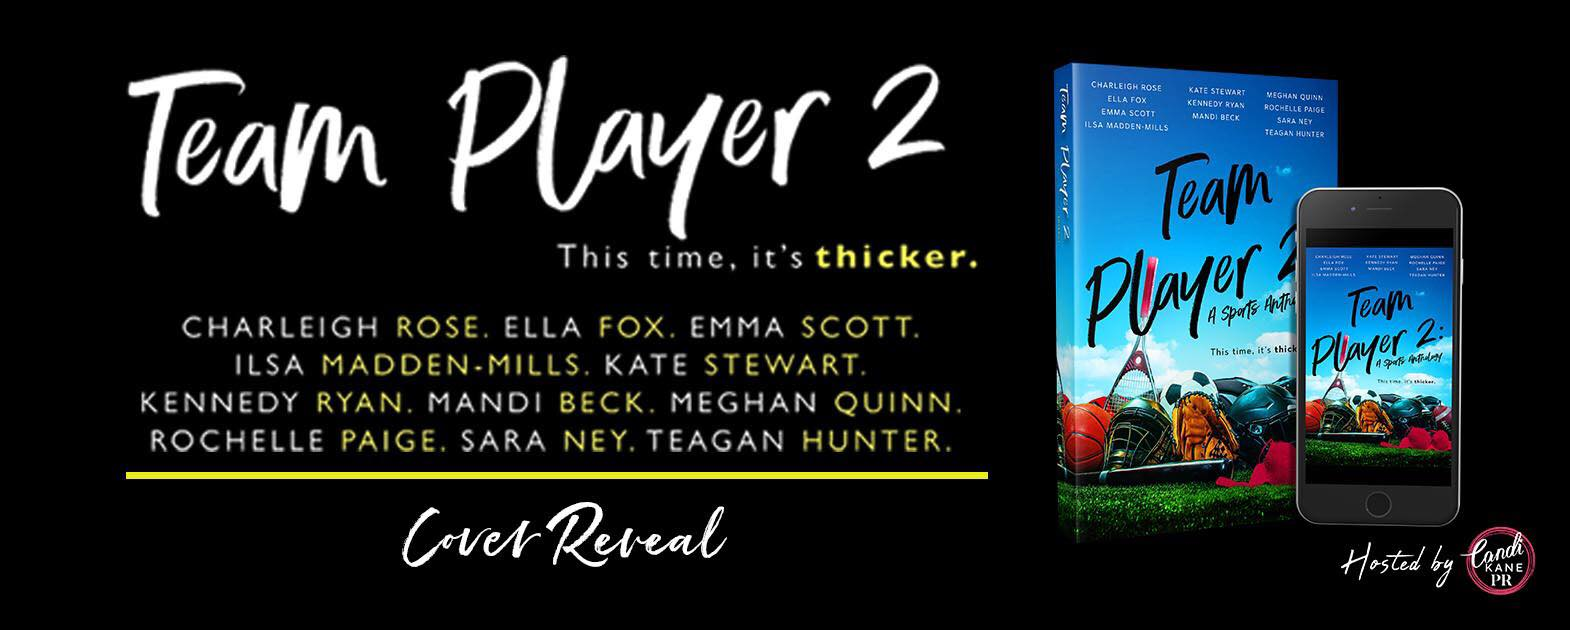 Cover Reveal:  Team Player 2 Anthology